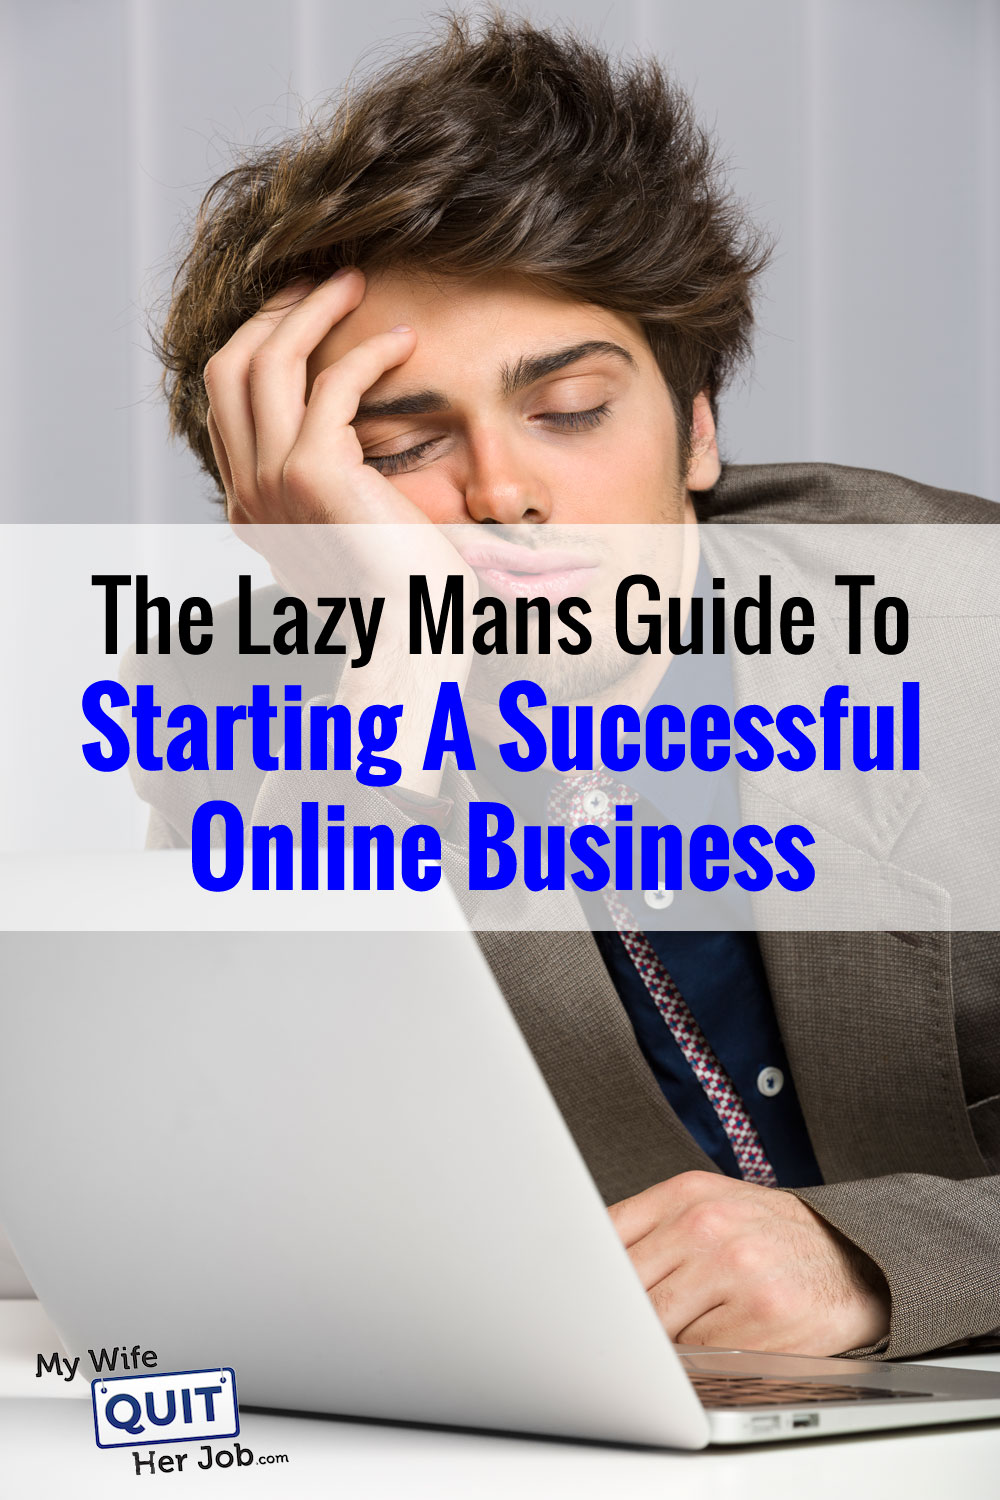 The Lazy Mans Guide To Starting A Successful Online Business